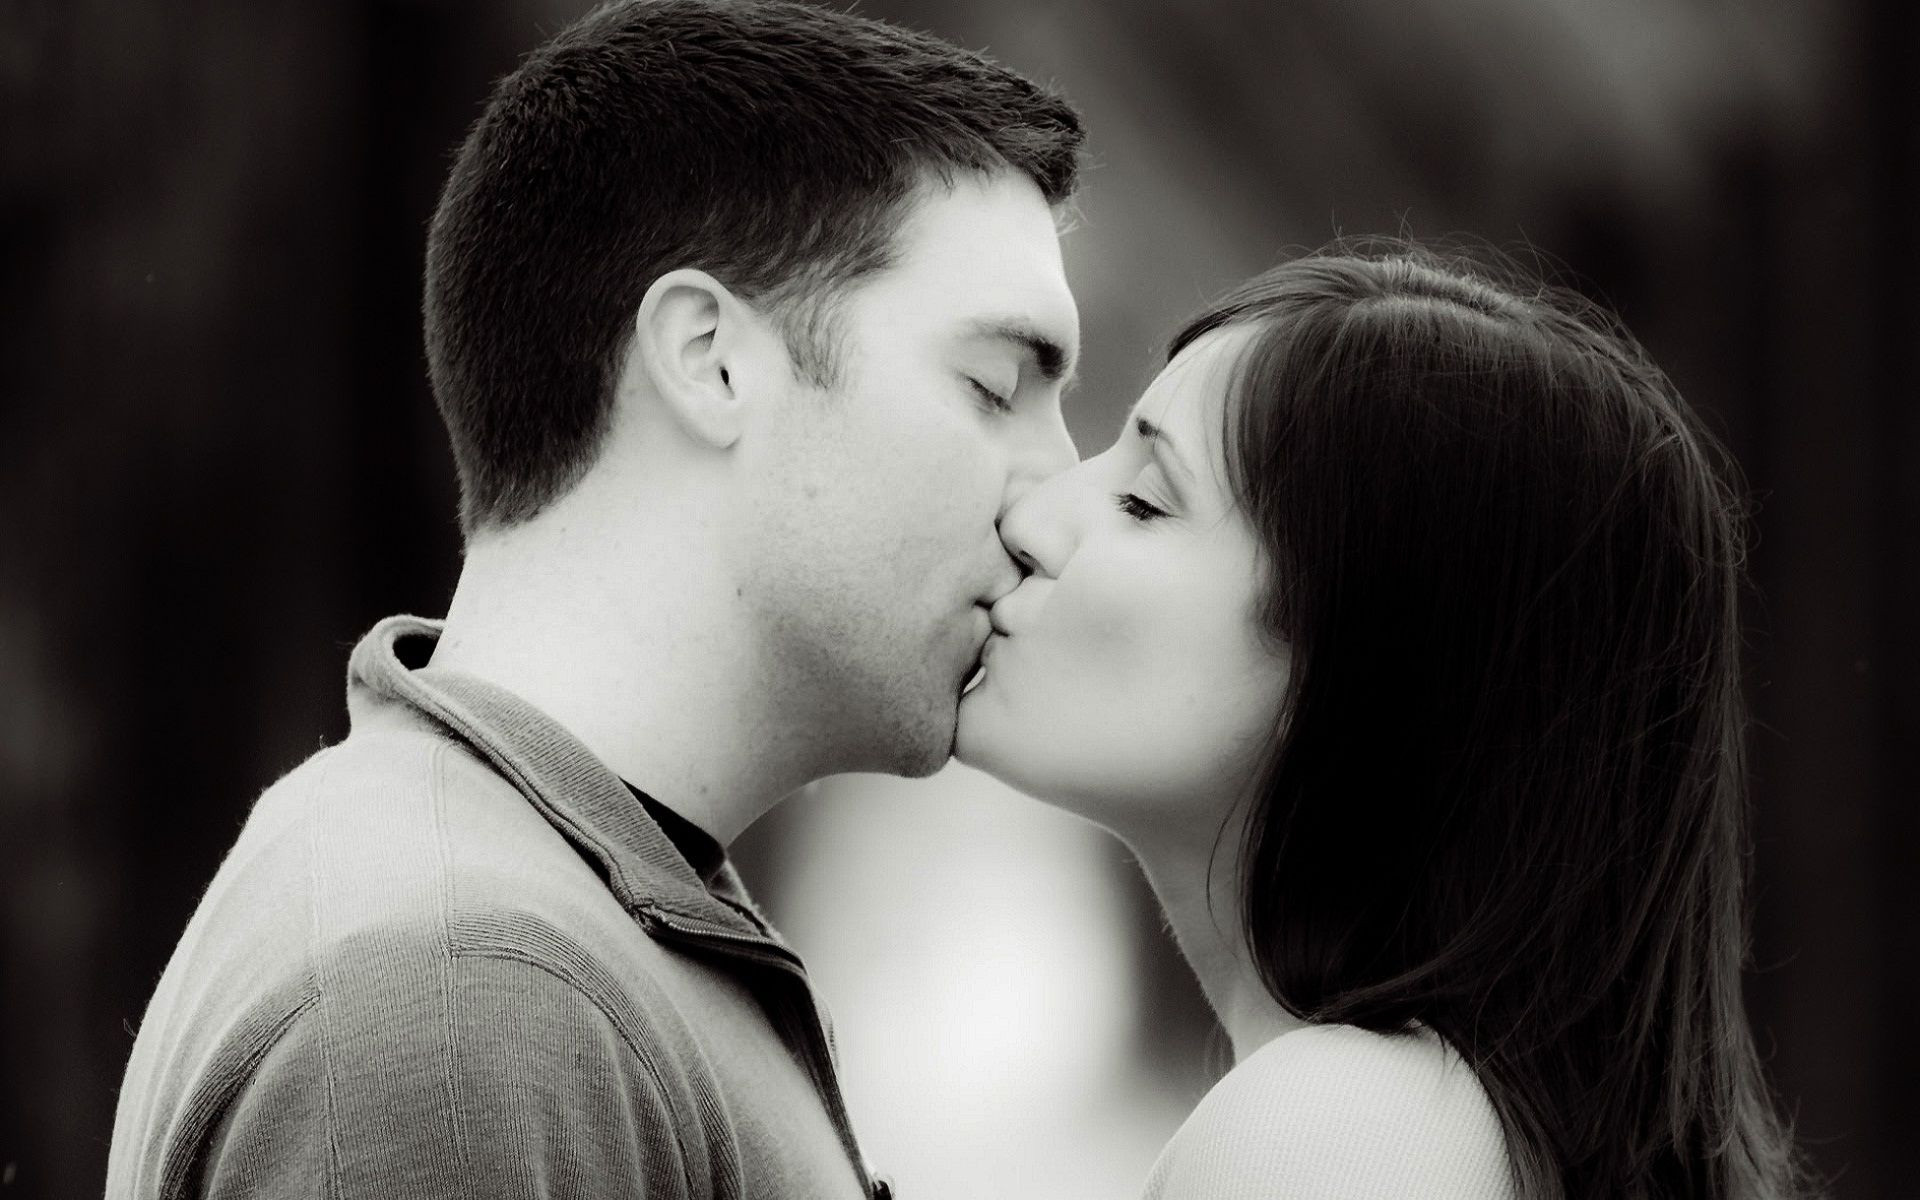 How to make a guy go crazy when kissing